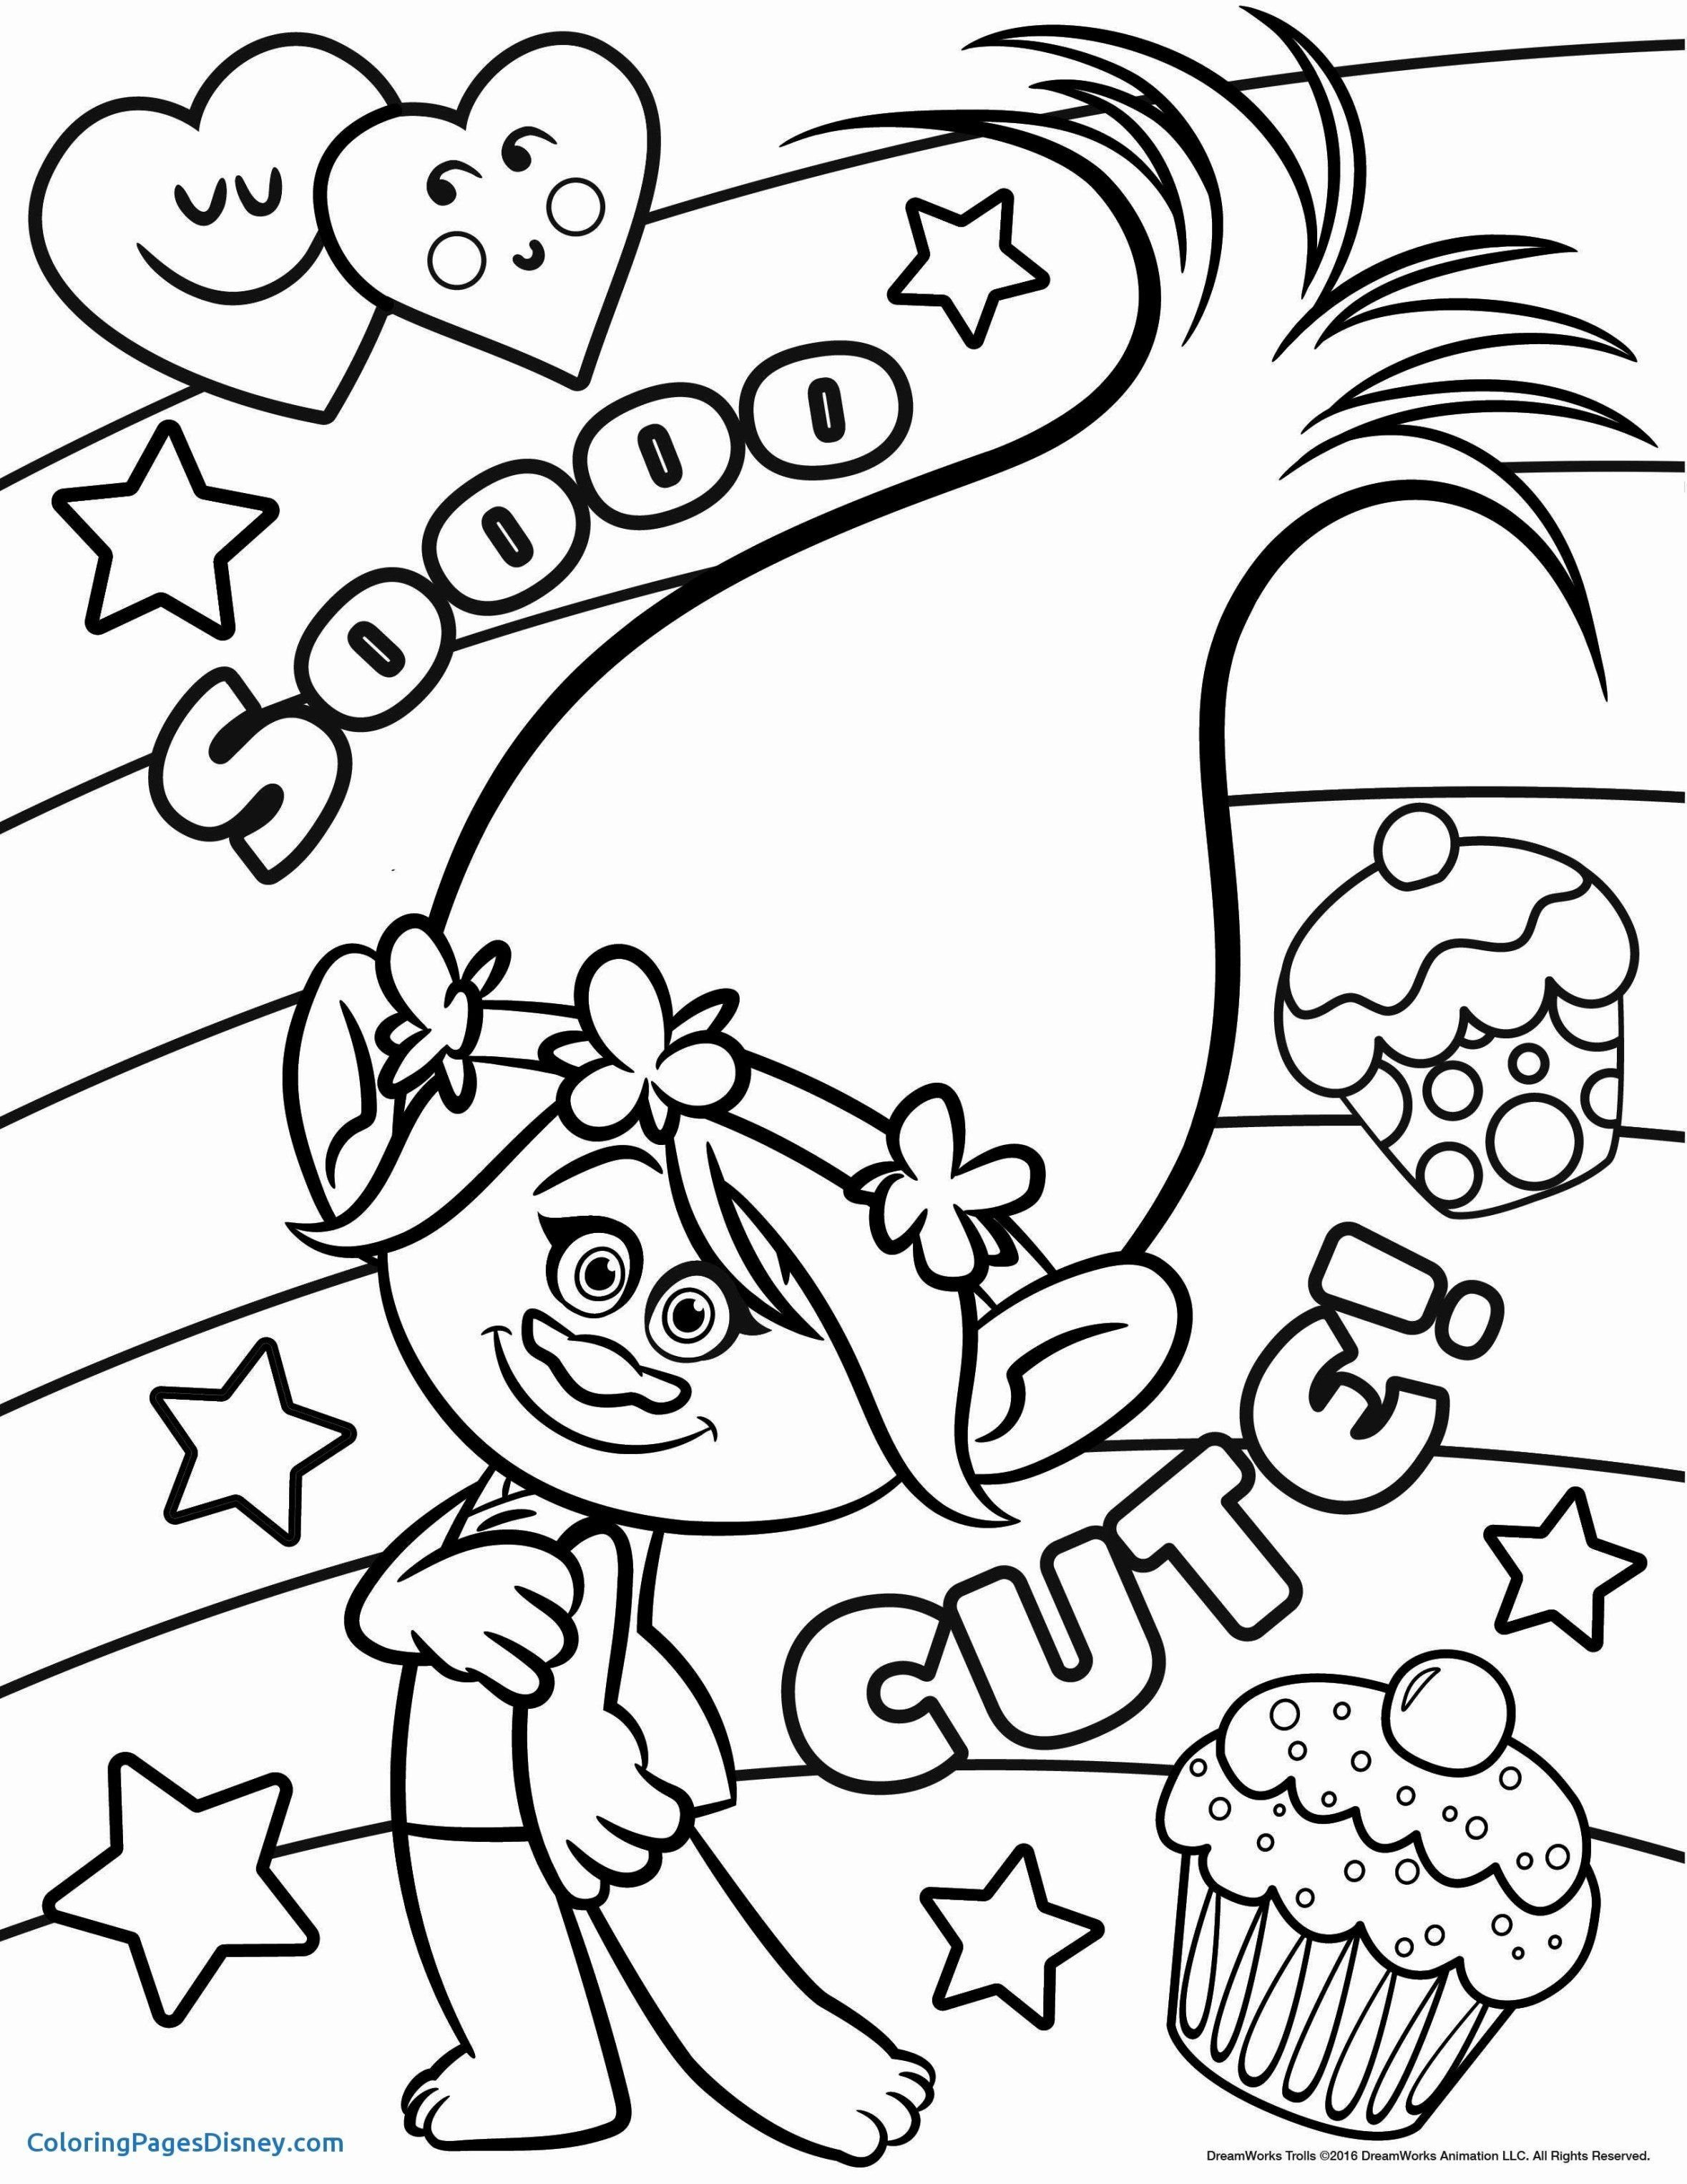 Printable Tinkerbell Coloring Pages Luxury Princess Poppy Coloring Page Fresh Free Printab In 2020 Free Disney Coloring Pages Poppy Coloring Page Disney Coloring Pages